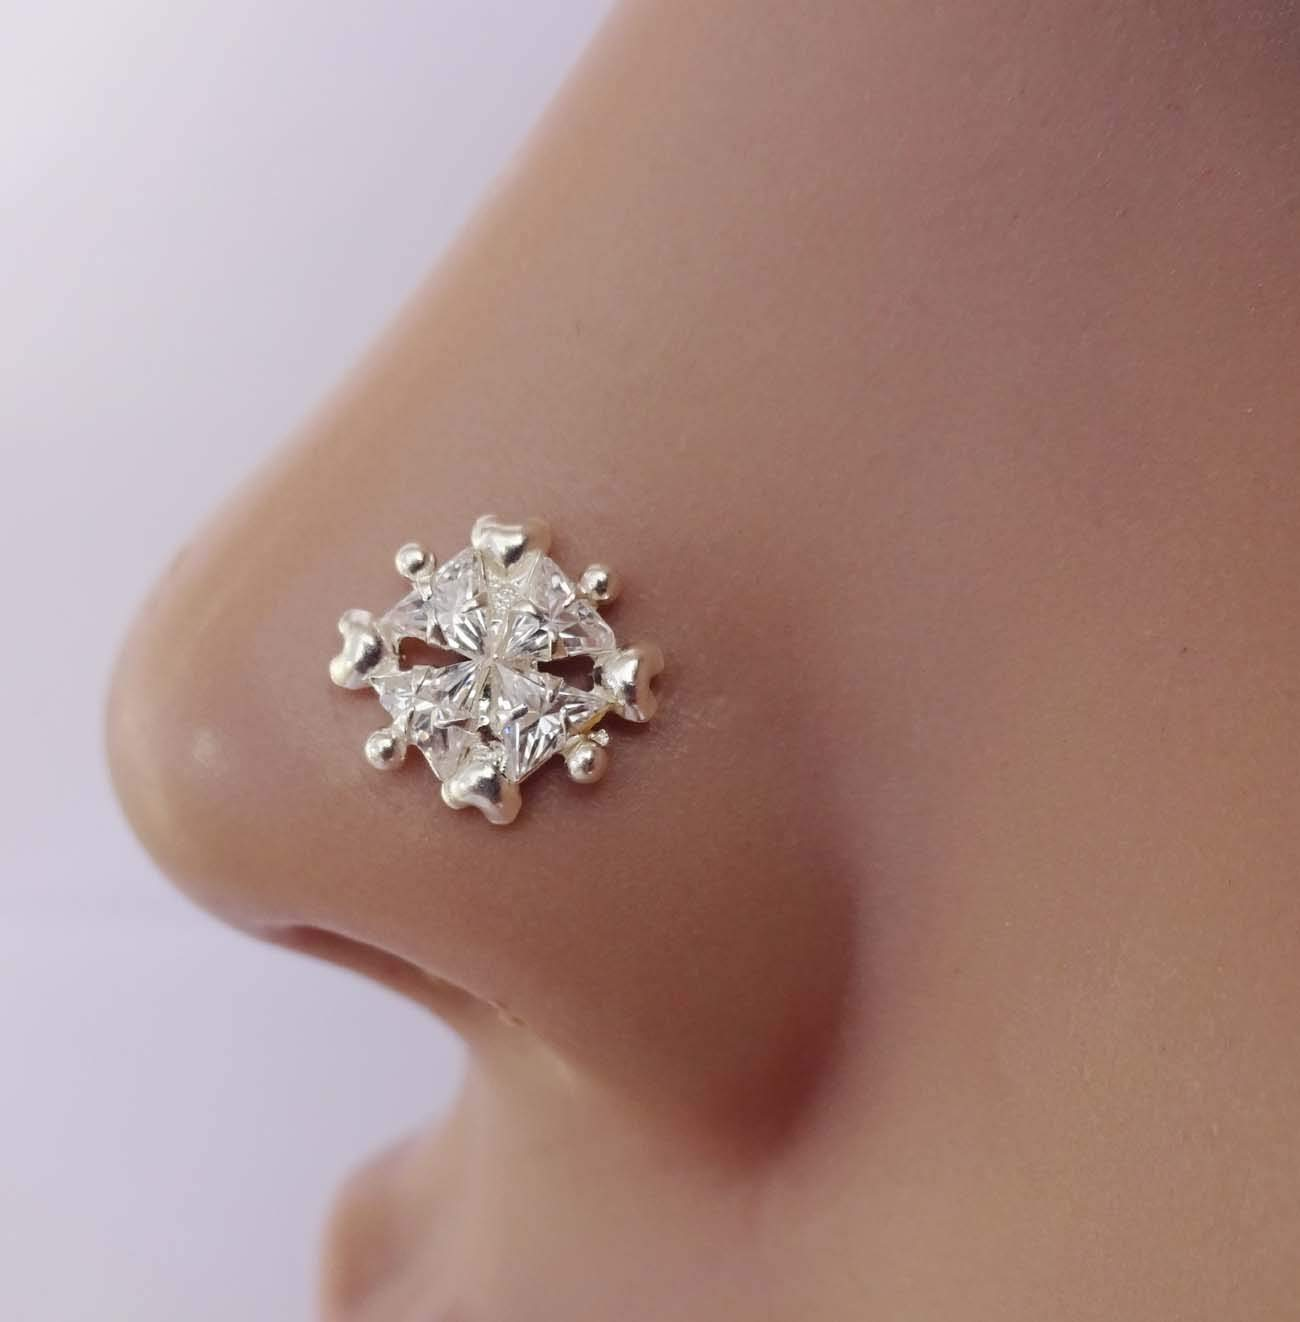 Unique Silver Nose Stud,Silver Nose Cuff,Tiny Gold Piercing,Wedding Nose Screw,CZ Clear Nose Stud,Crock Screw Nose Stud,Crystal Stone Nose Piercing,Silver Diamond Piercing,Monroe Nose Ring(TEJ828)